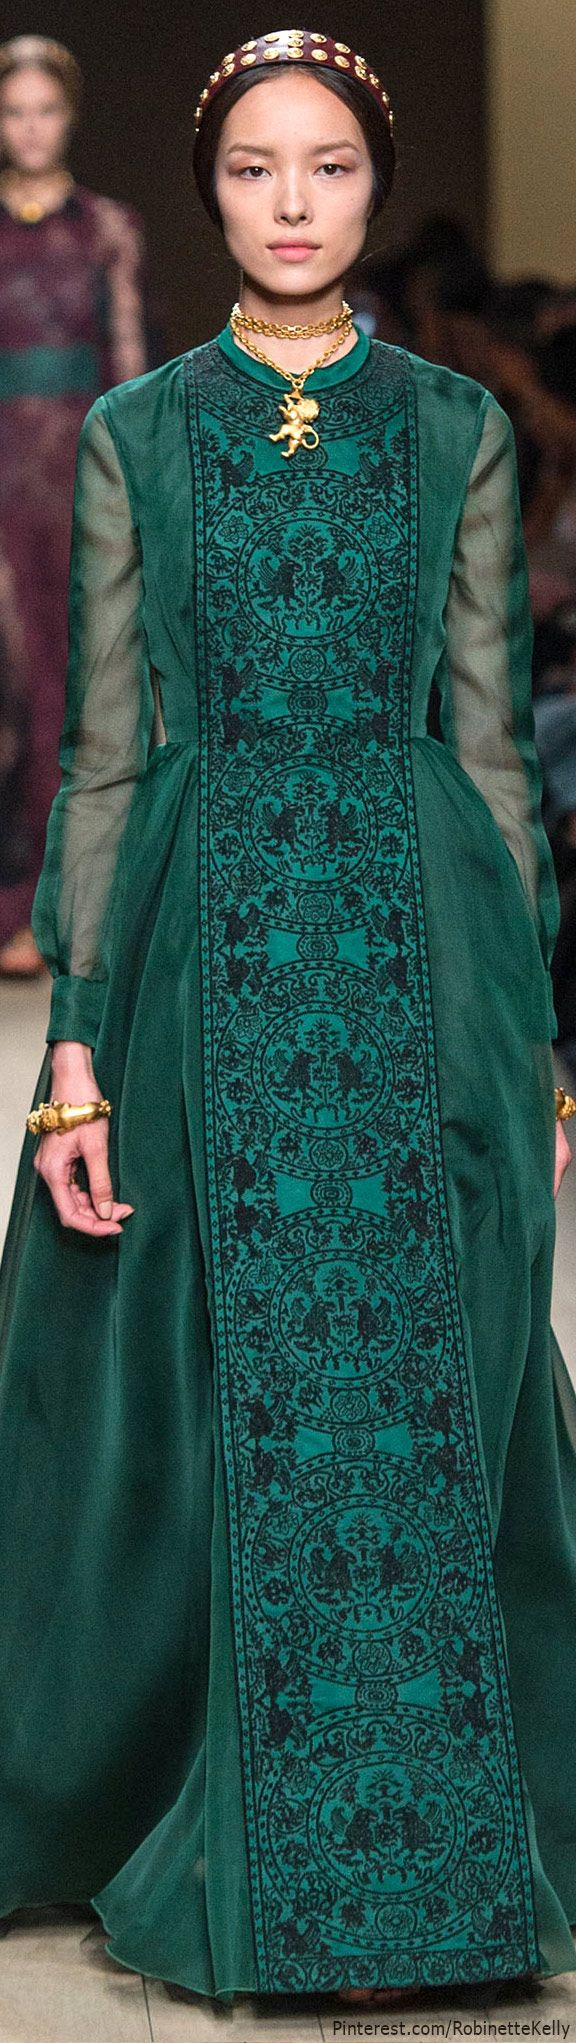 Valentino | S/S 2014 RTW. This resembles the era of the pre-Raphaelite movement in the 19th century. It pulls themes from the medieval period with dark colors and elaborate prints. The conservative neckline resembles the medieval period as well. 1/31/2016.